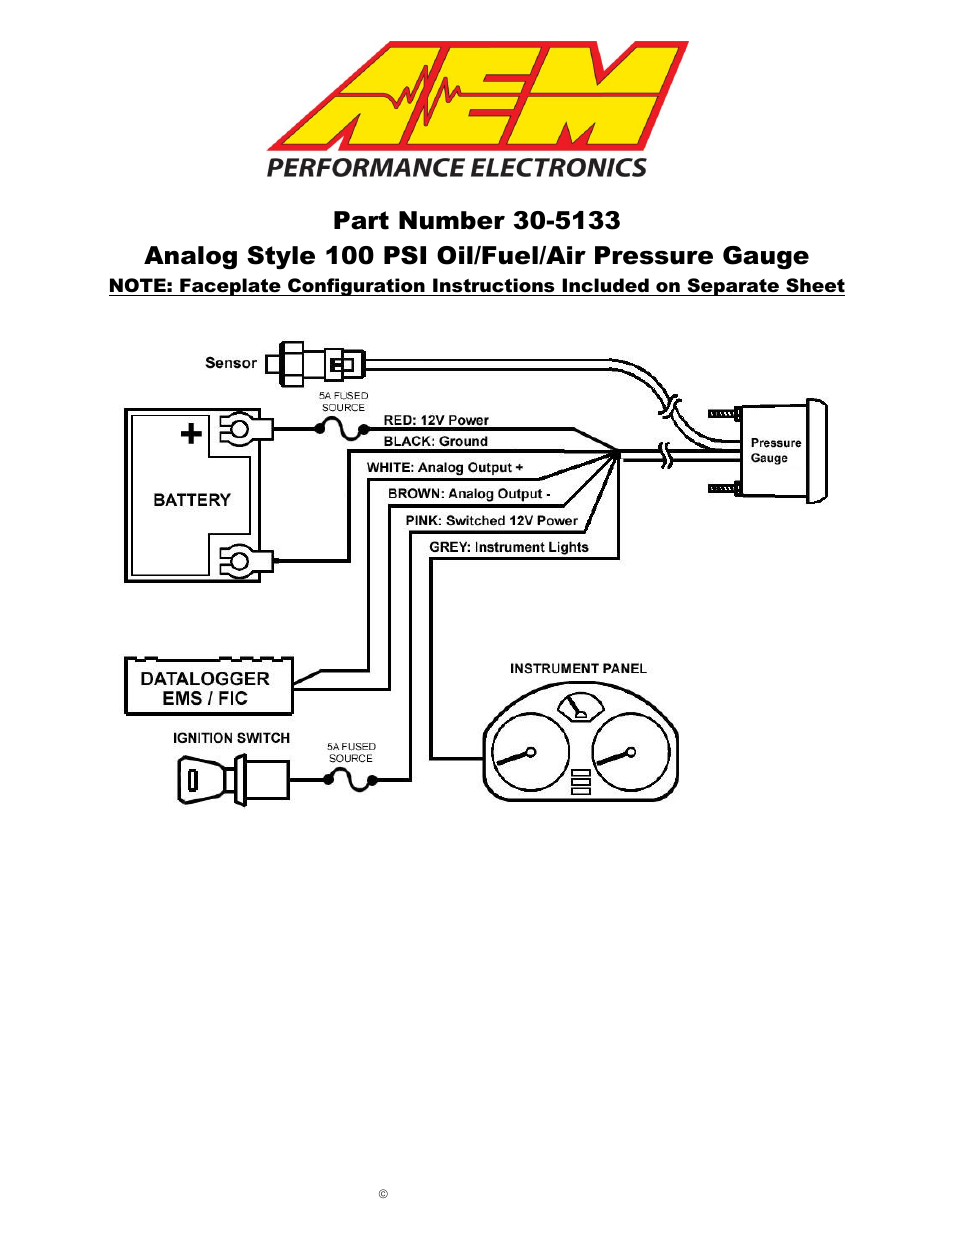 Fuel Pressure Gauge Wiring Diagram Free For You Boat Lights Aem 30 5135m Analog Oil Metric User Manual 6 Pages Rh Manualsdir Com